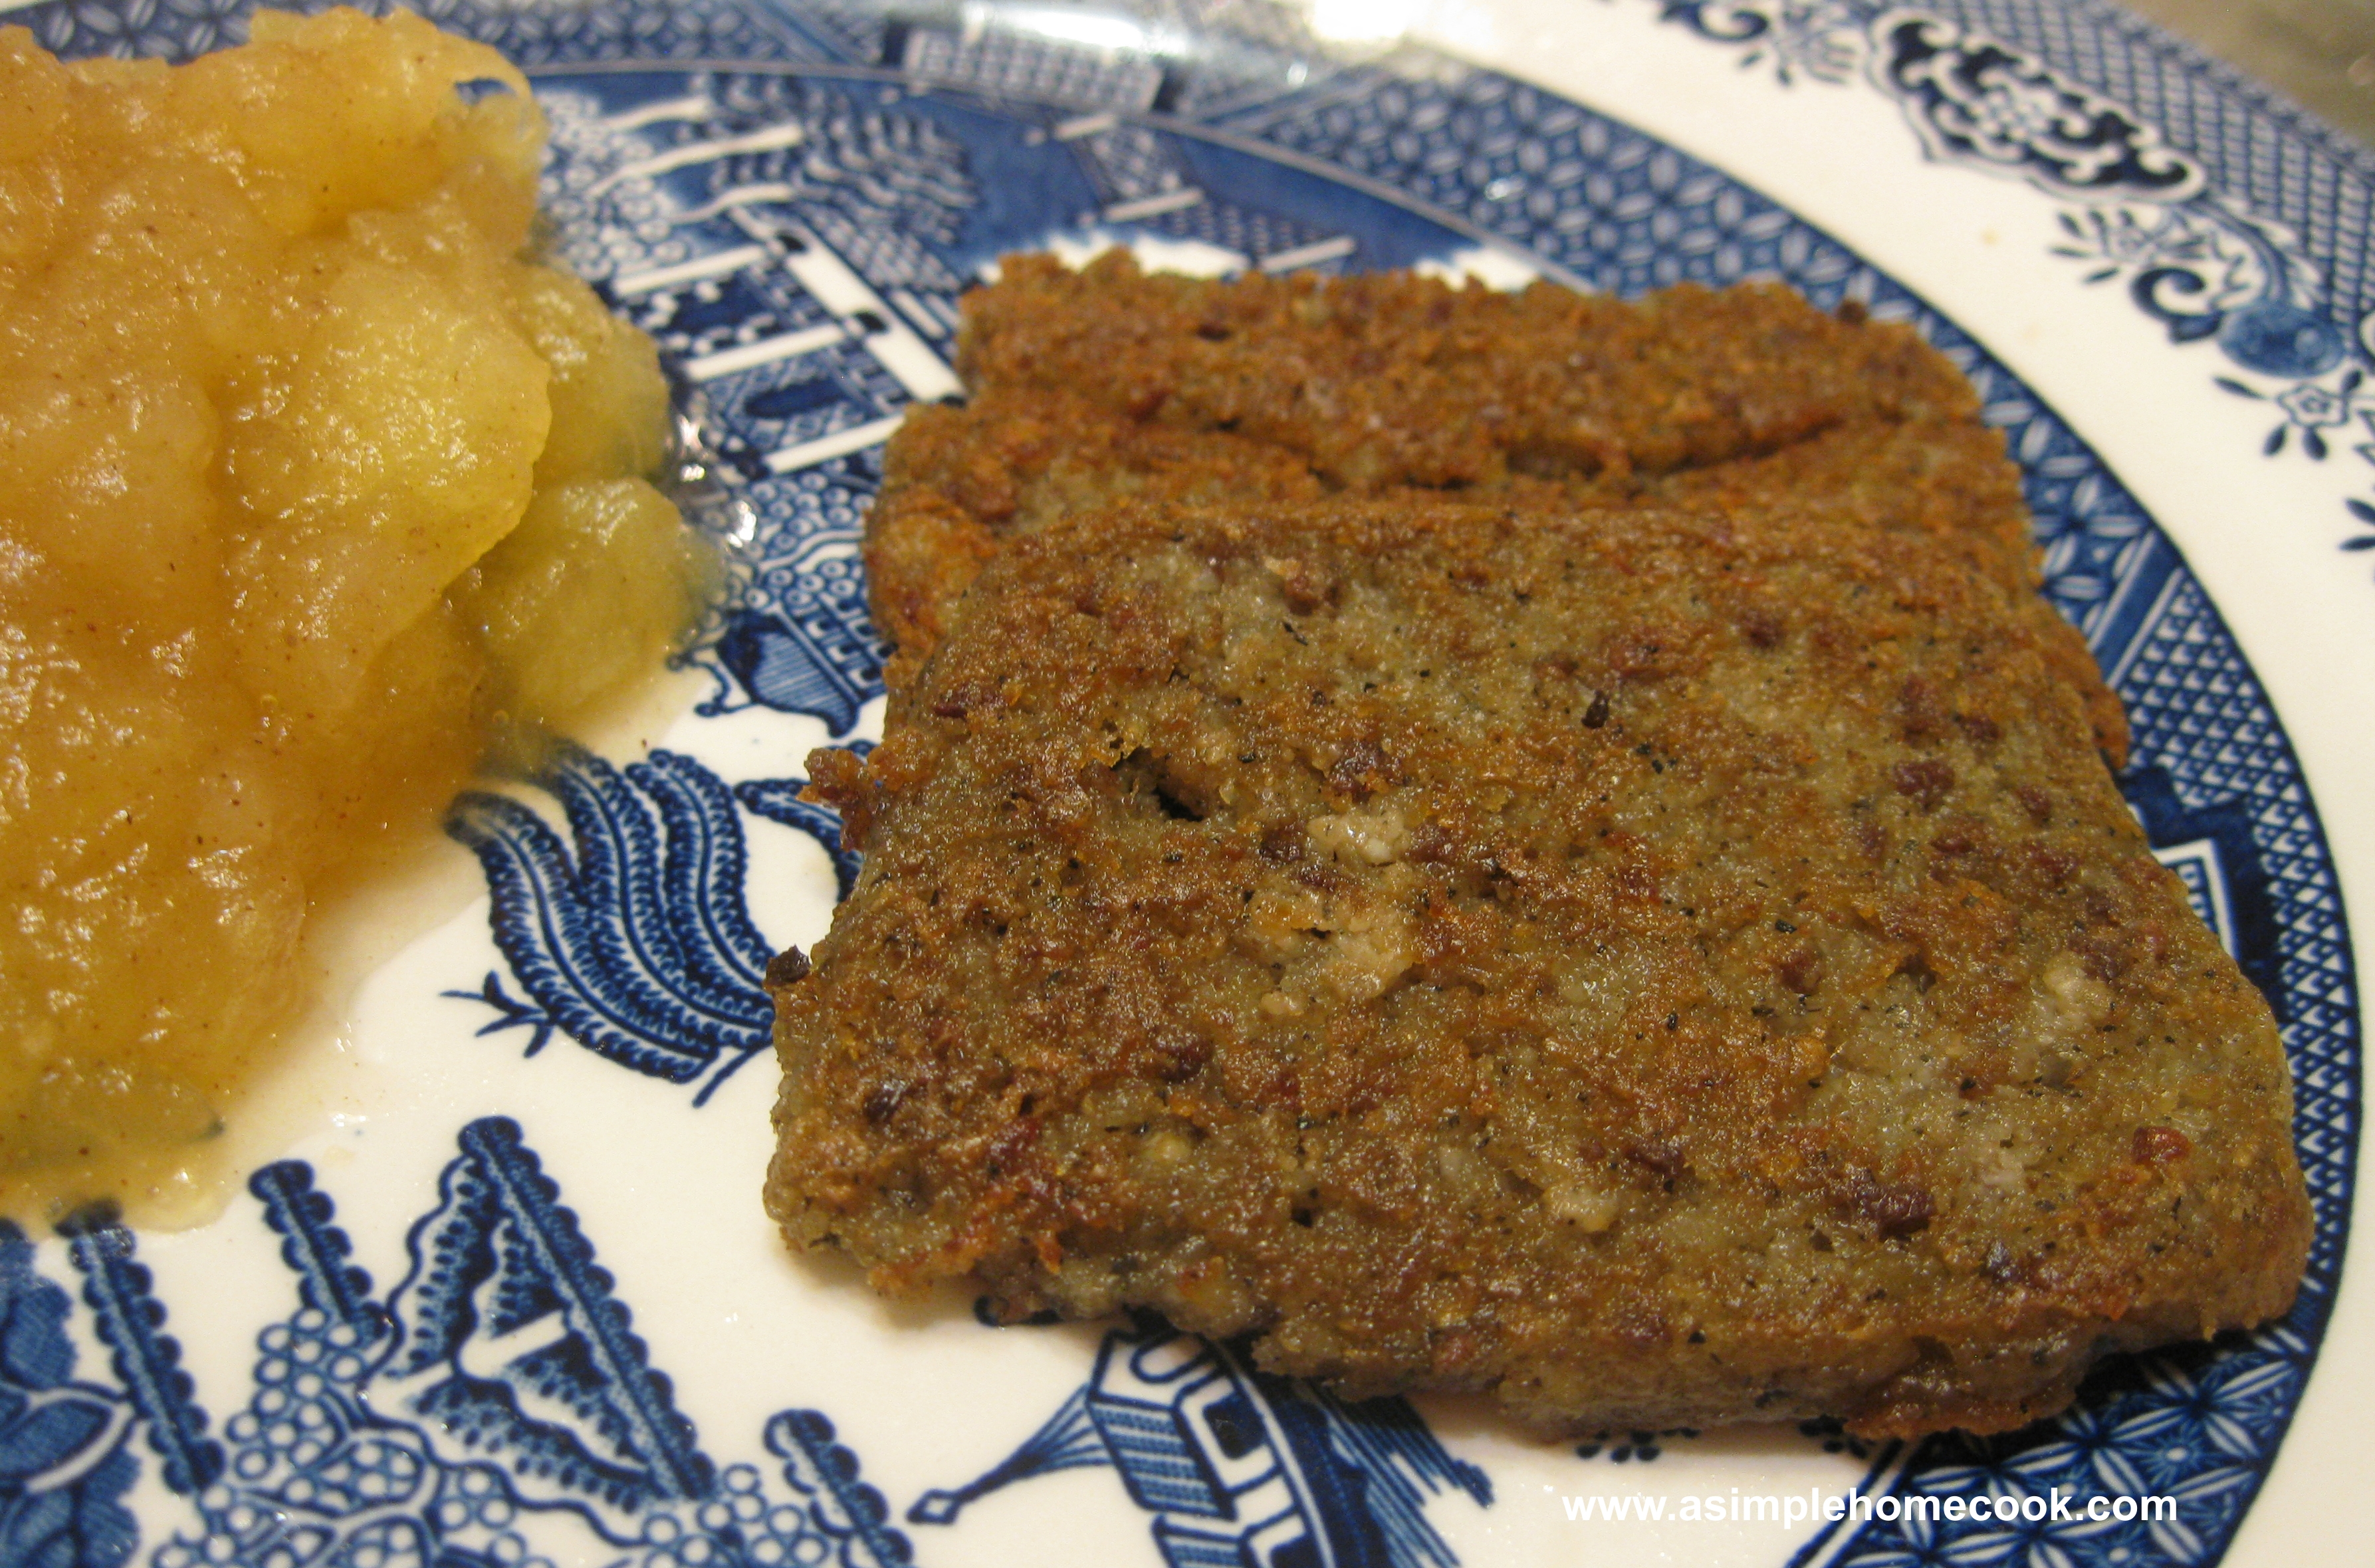 Scrapple and Apples